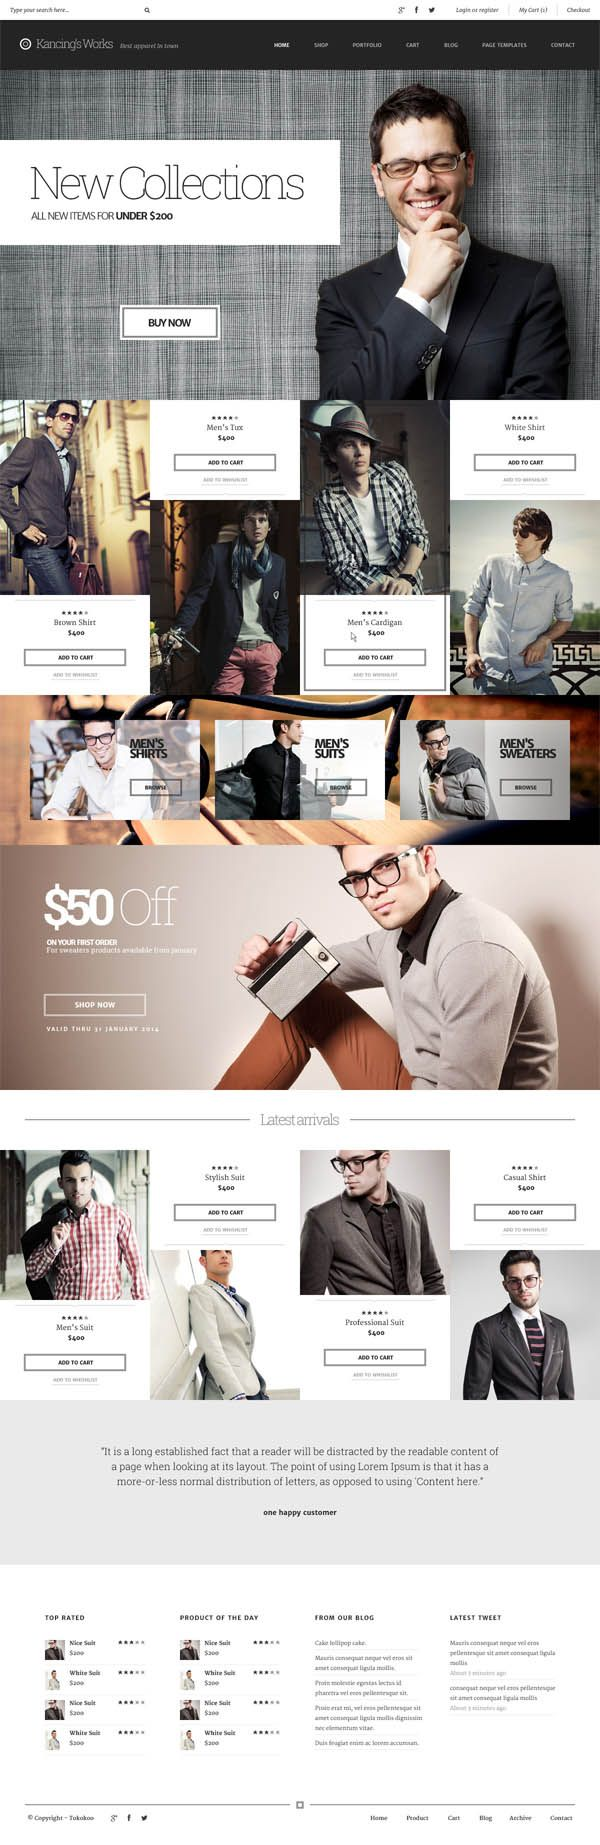 Kancing: Fashion WooCommerce WordPress Theme #website #web #webdesign #theme #wp #wordpress